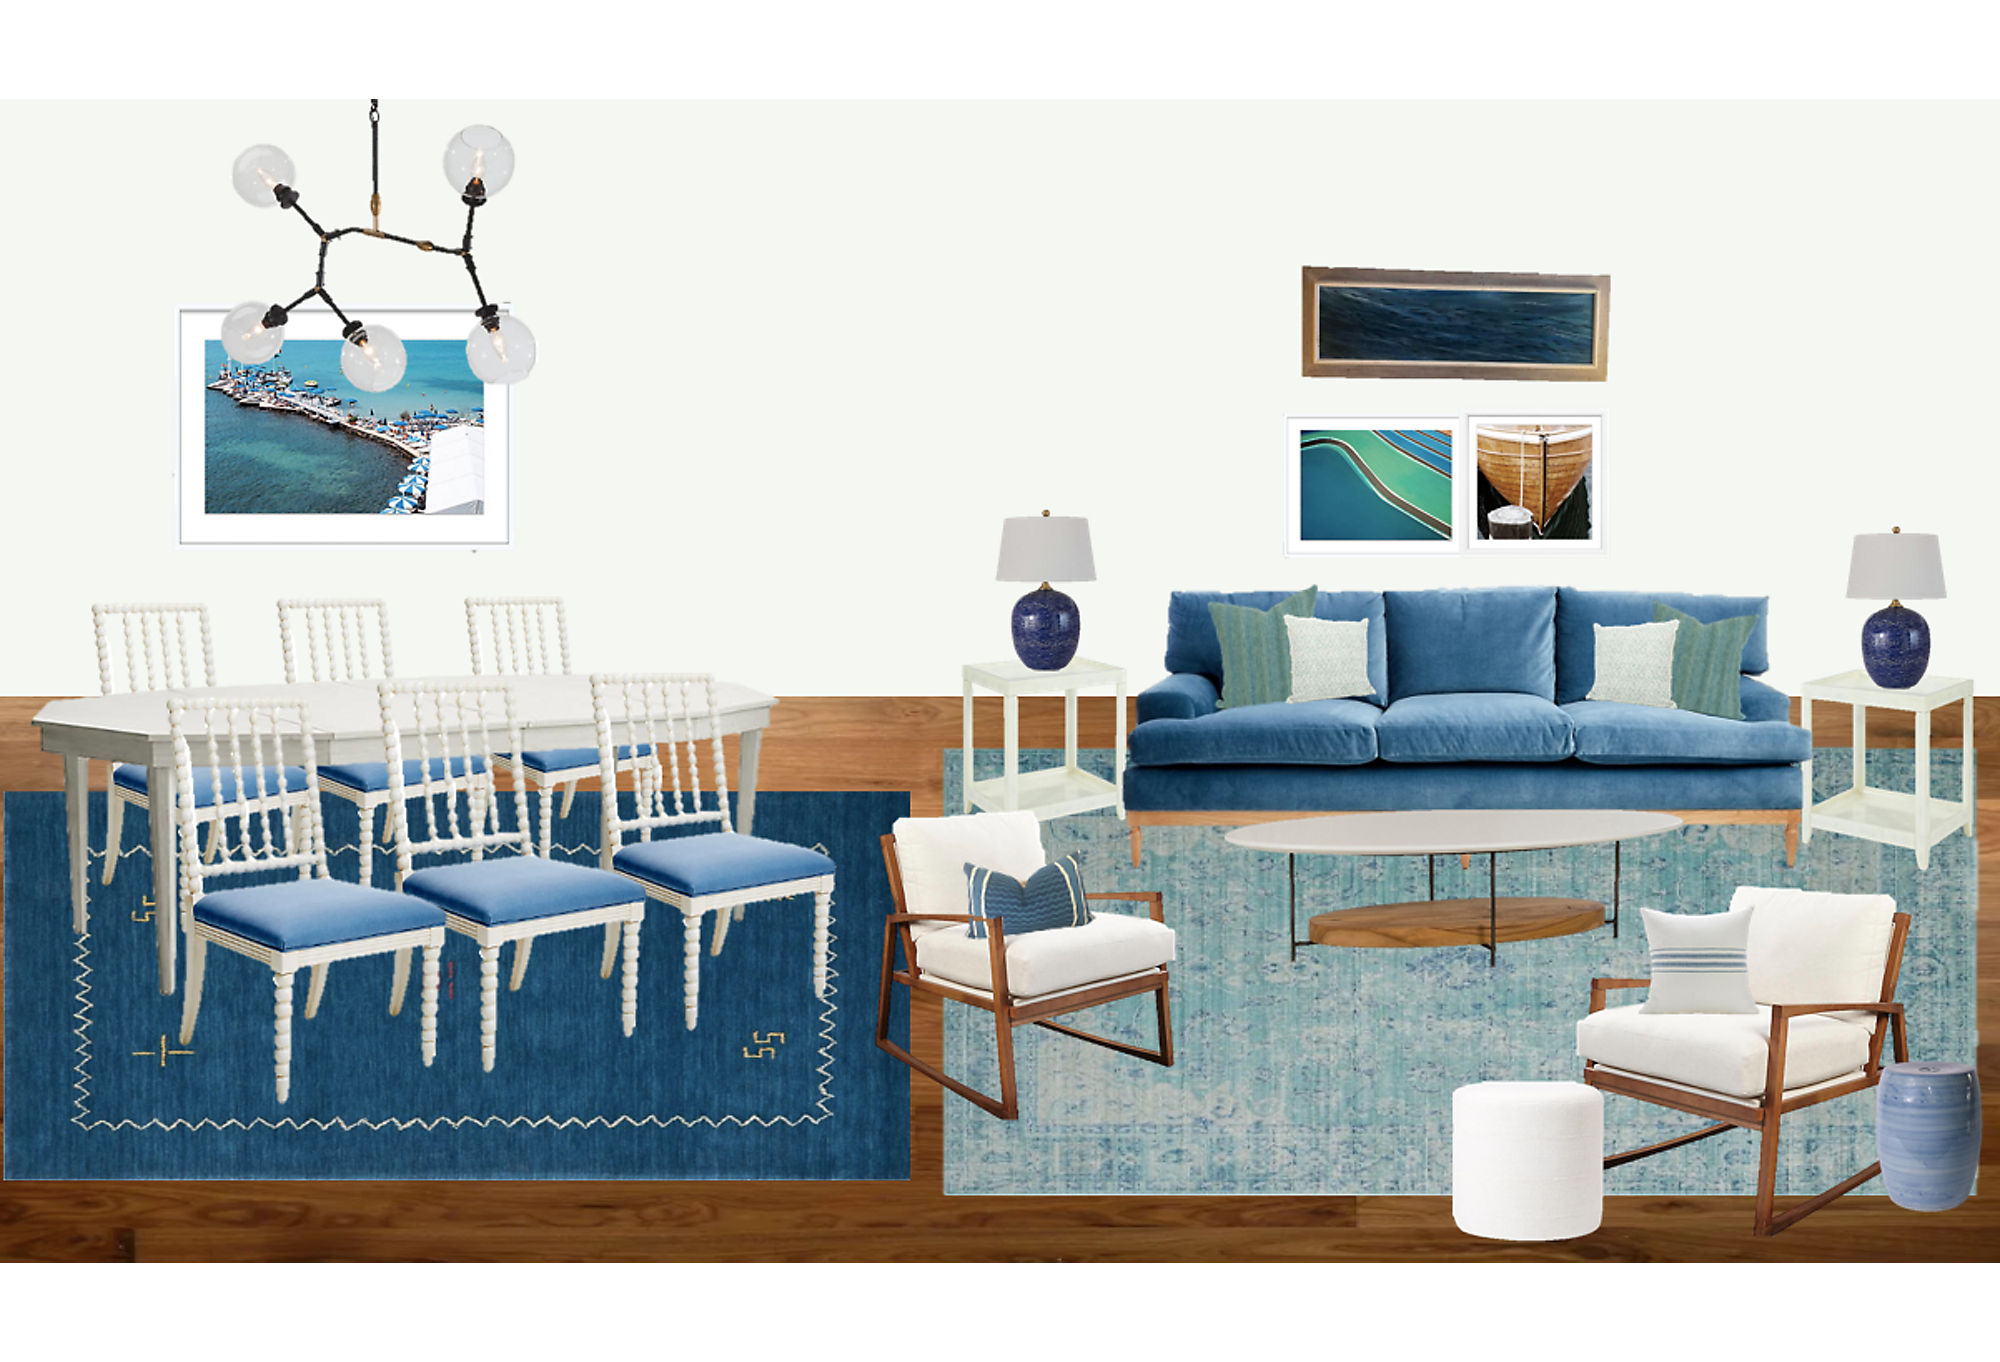 A moodboard Shannon created to show her vision for a client's apartment